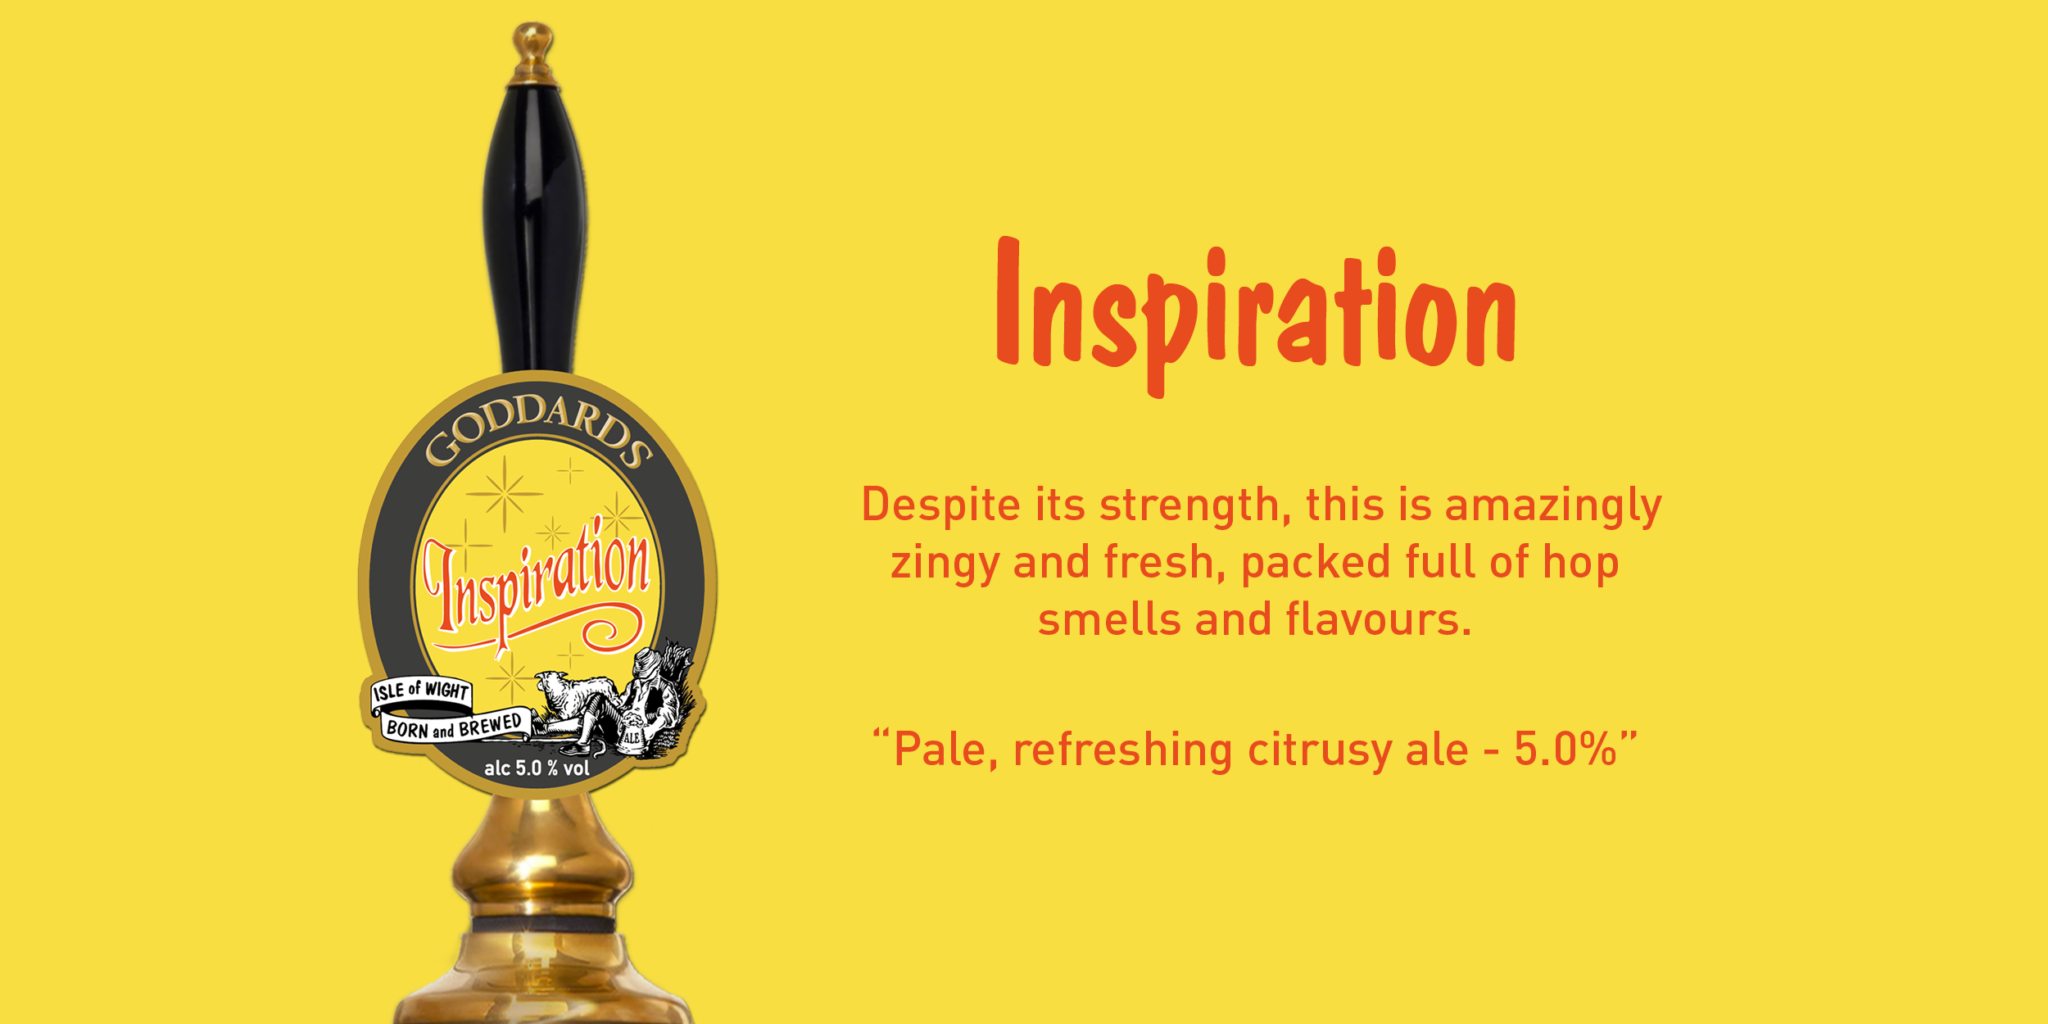 Goddards Brewery Wight Inspiration